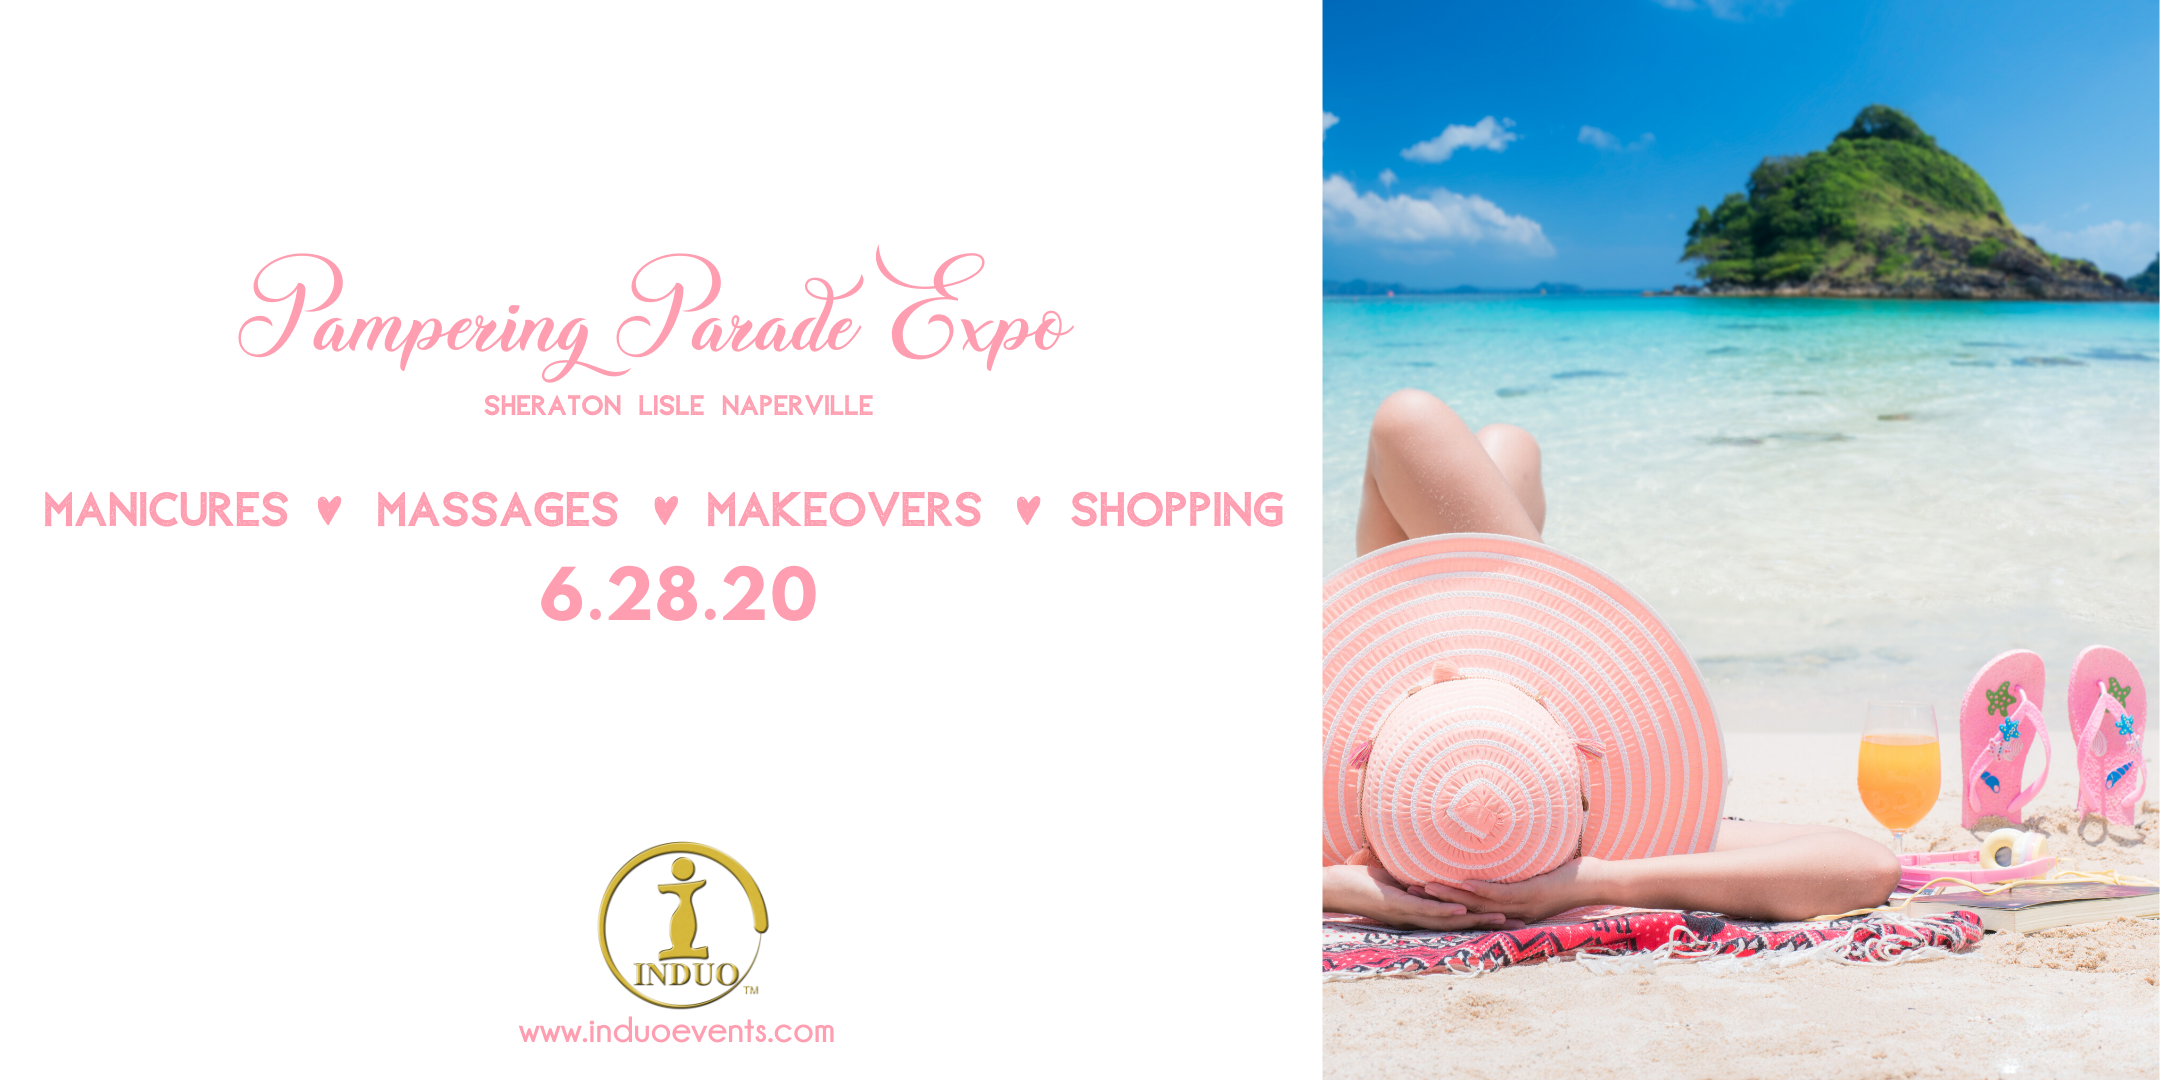 Induo's 5th Annual Pampering Parade Women's Expo